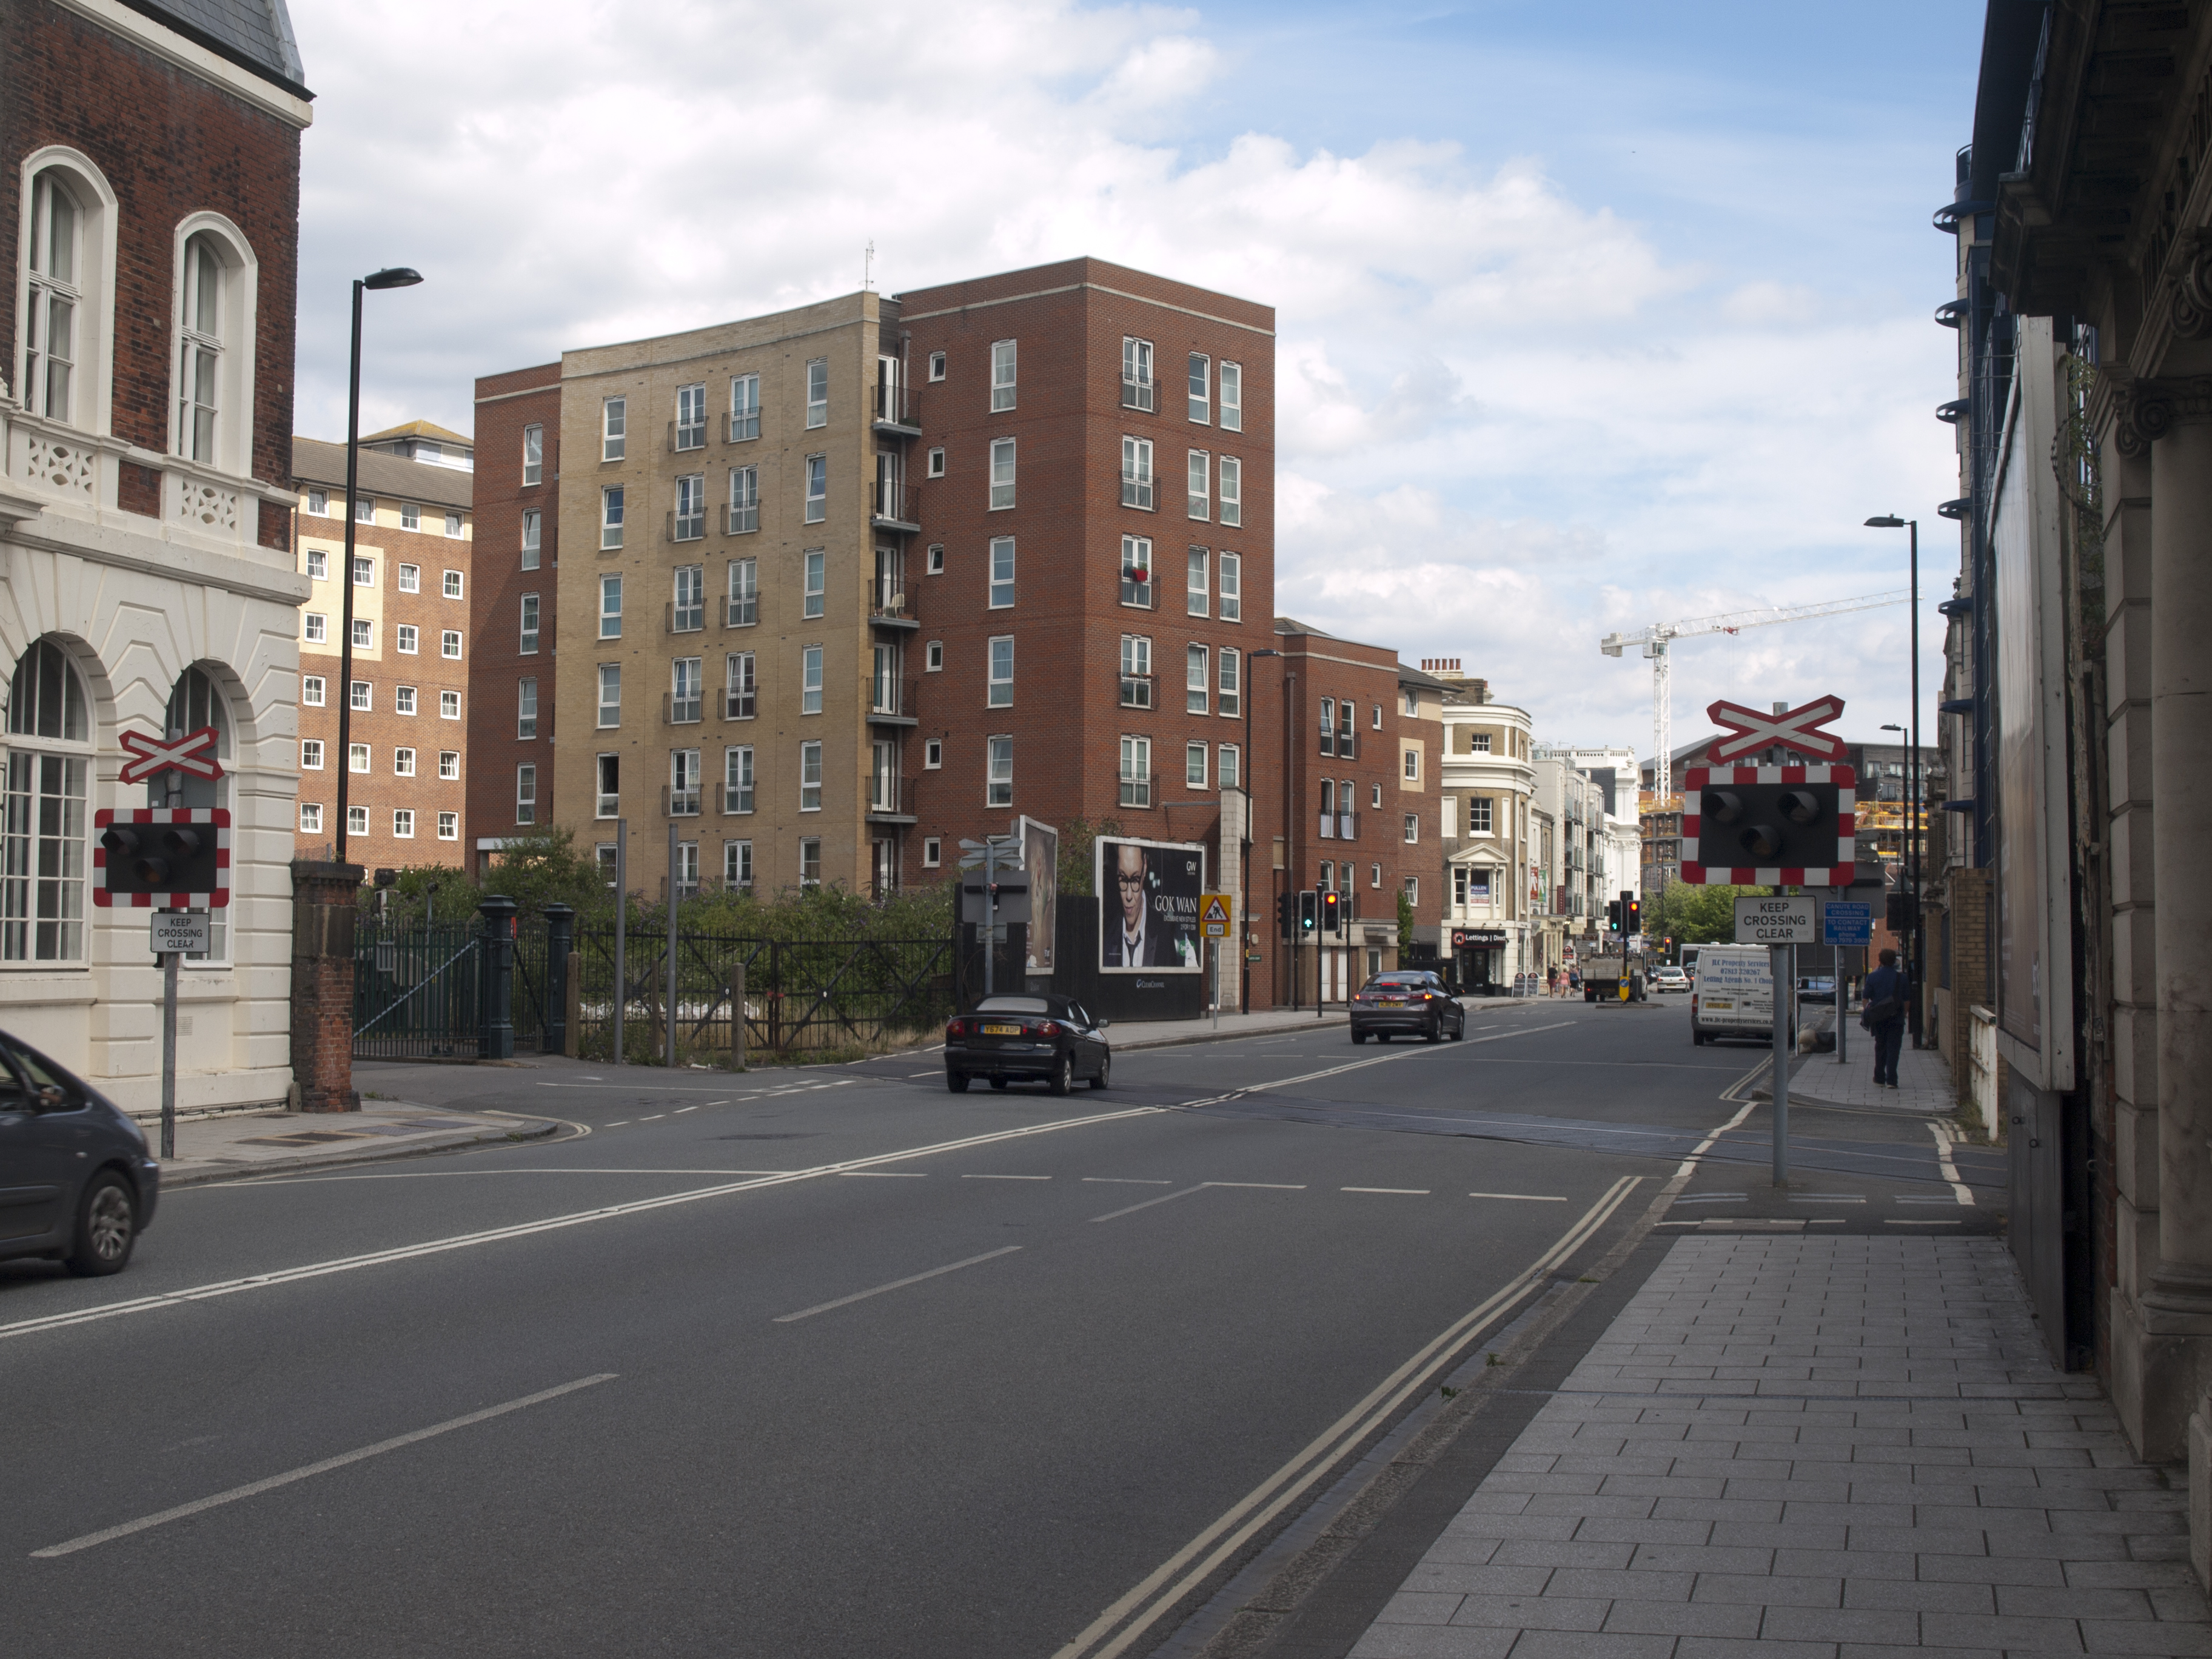 Canute Road adjacent the Old Docks with buildings old and new.